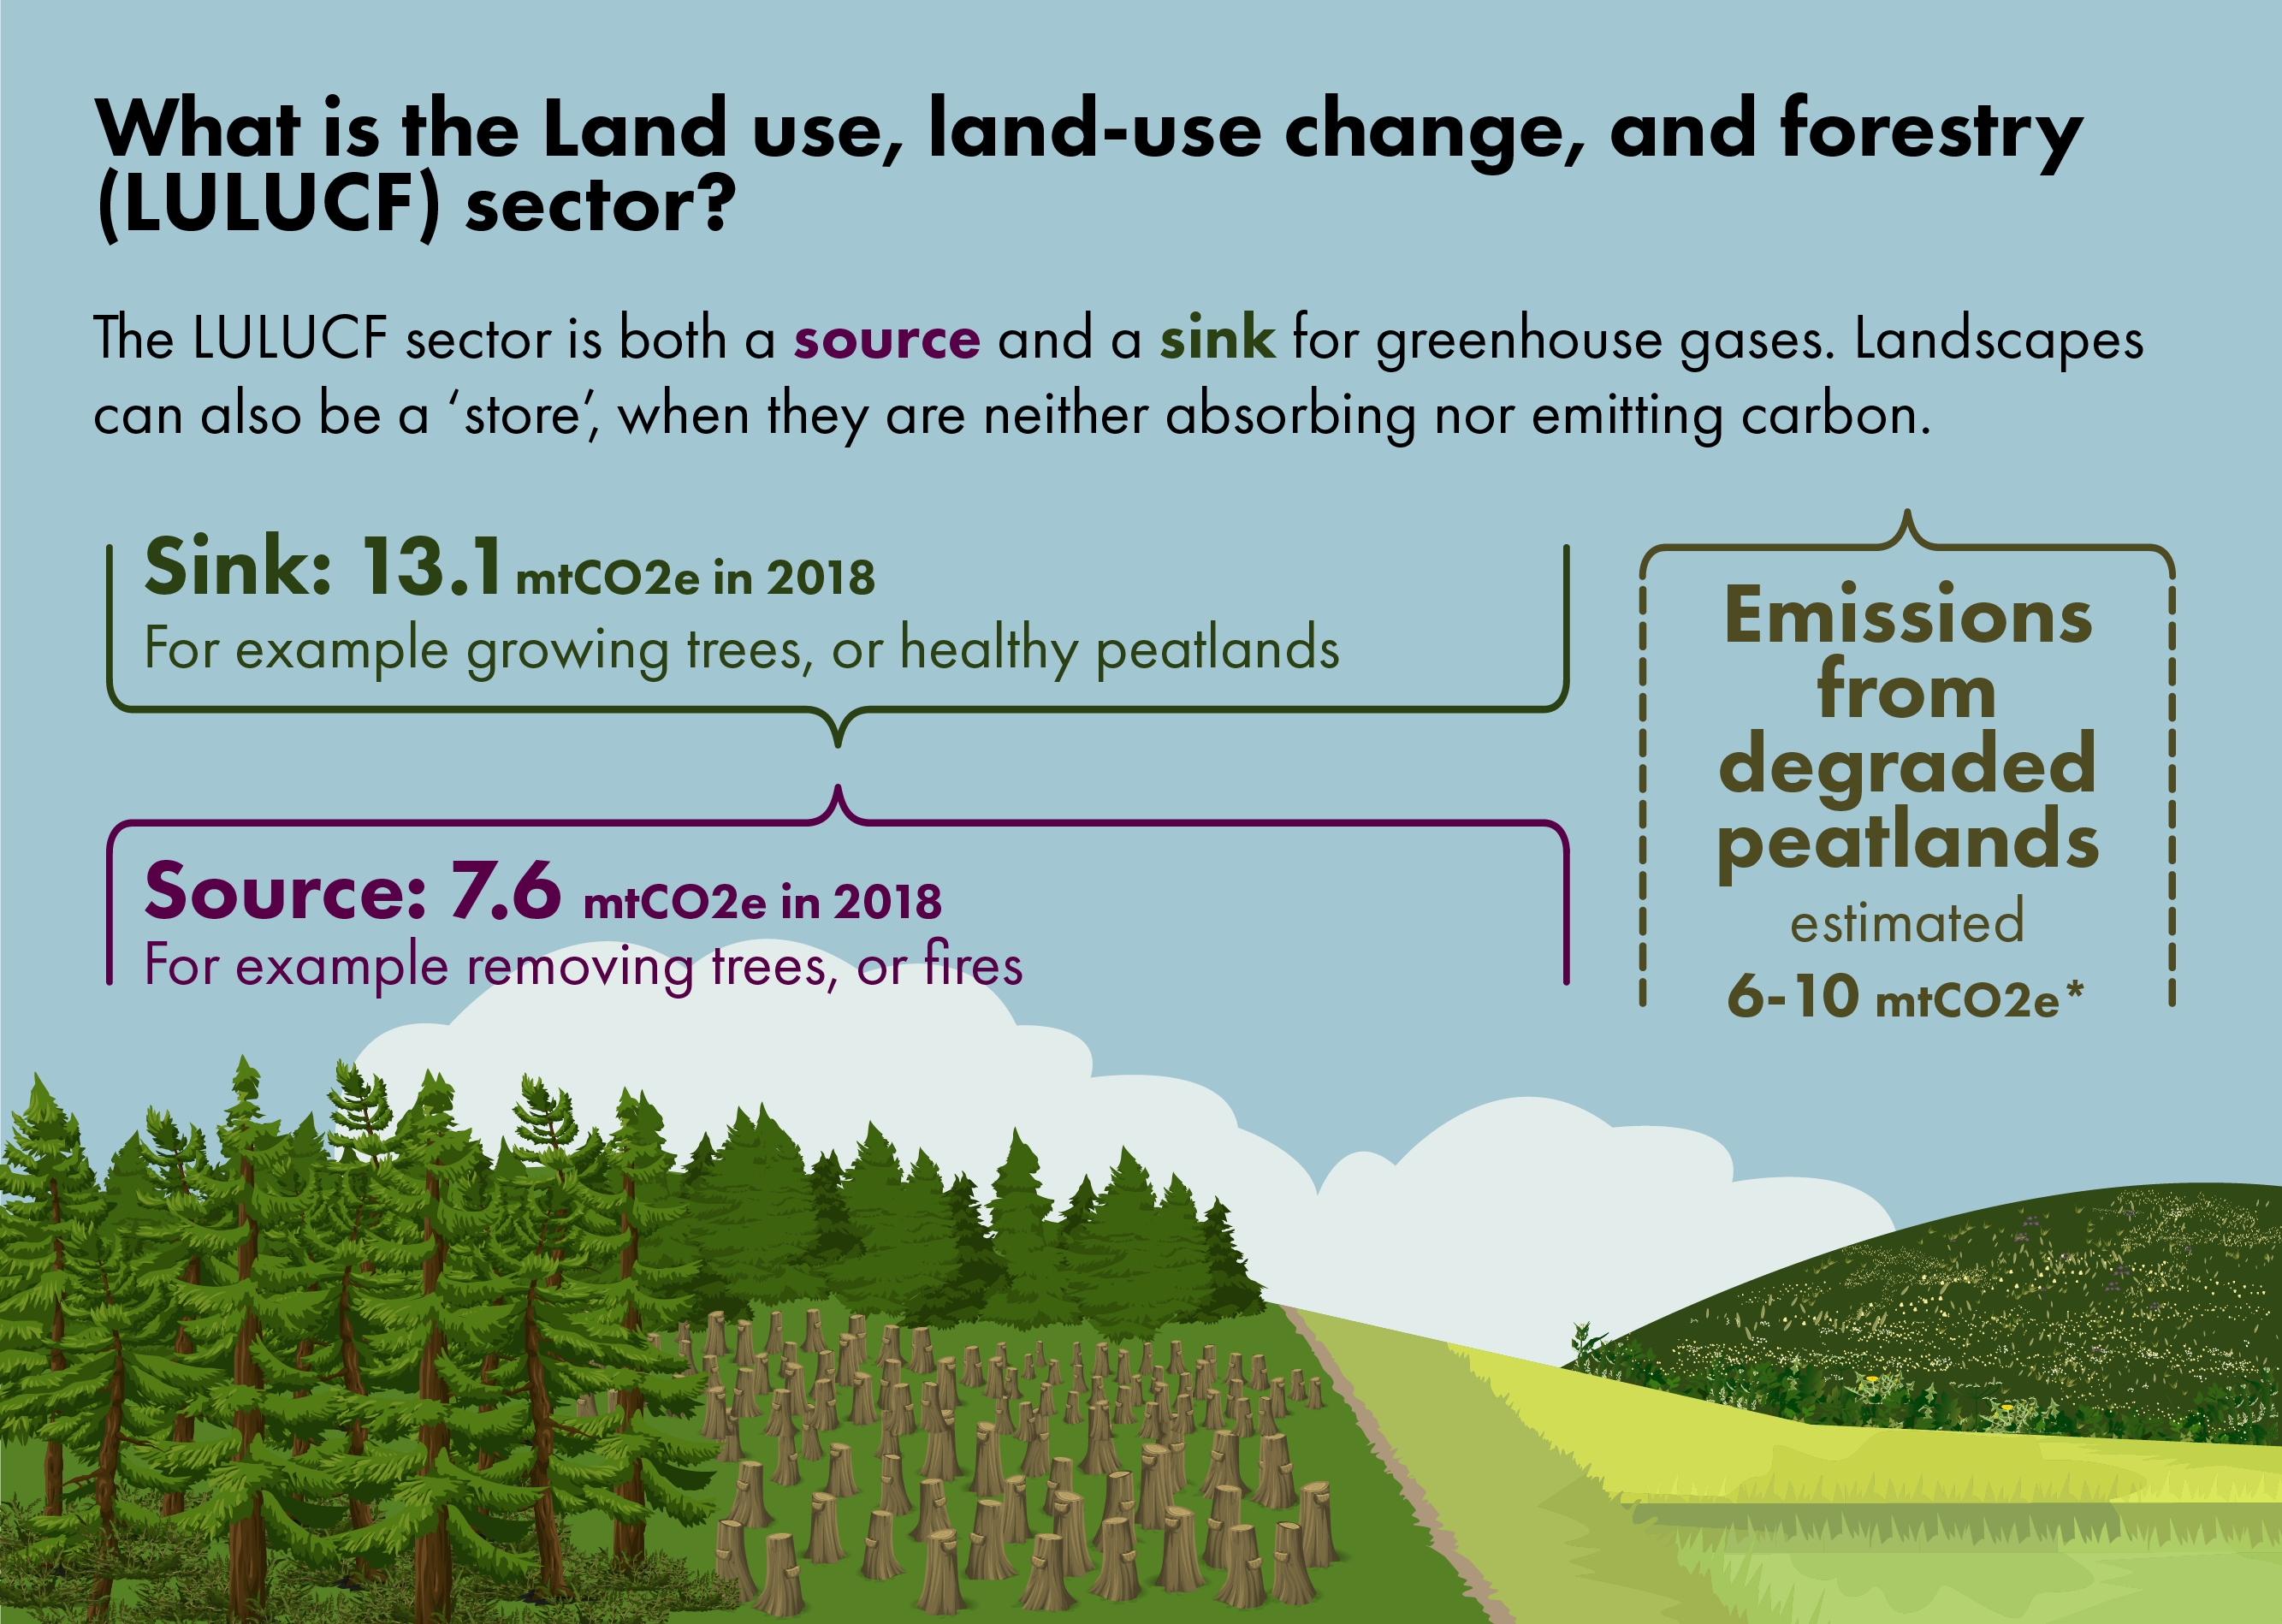 The land use, land use change and forestry sector can be both a sink and a source of greenhouse gas emissions. It can also be a store, when it is neither emitting or sequestering carbon. Activities such as growing trees, or healthy peatlands sequester carbon, while removing trees or fires emit carbon from land. In 2018, the land use, land use change and forestry sector emitted 7.6 million tonnes of carbon dioxide equivalent, but sequestered 13.1 million tonnes. To add to this, there are 6 to 10 million tonnes that are still to be accounted for, these are for emissions from degraded peatlands.